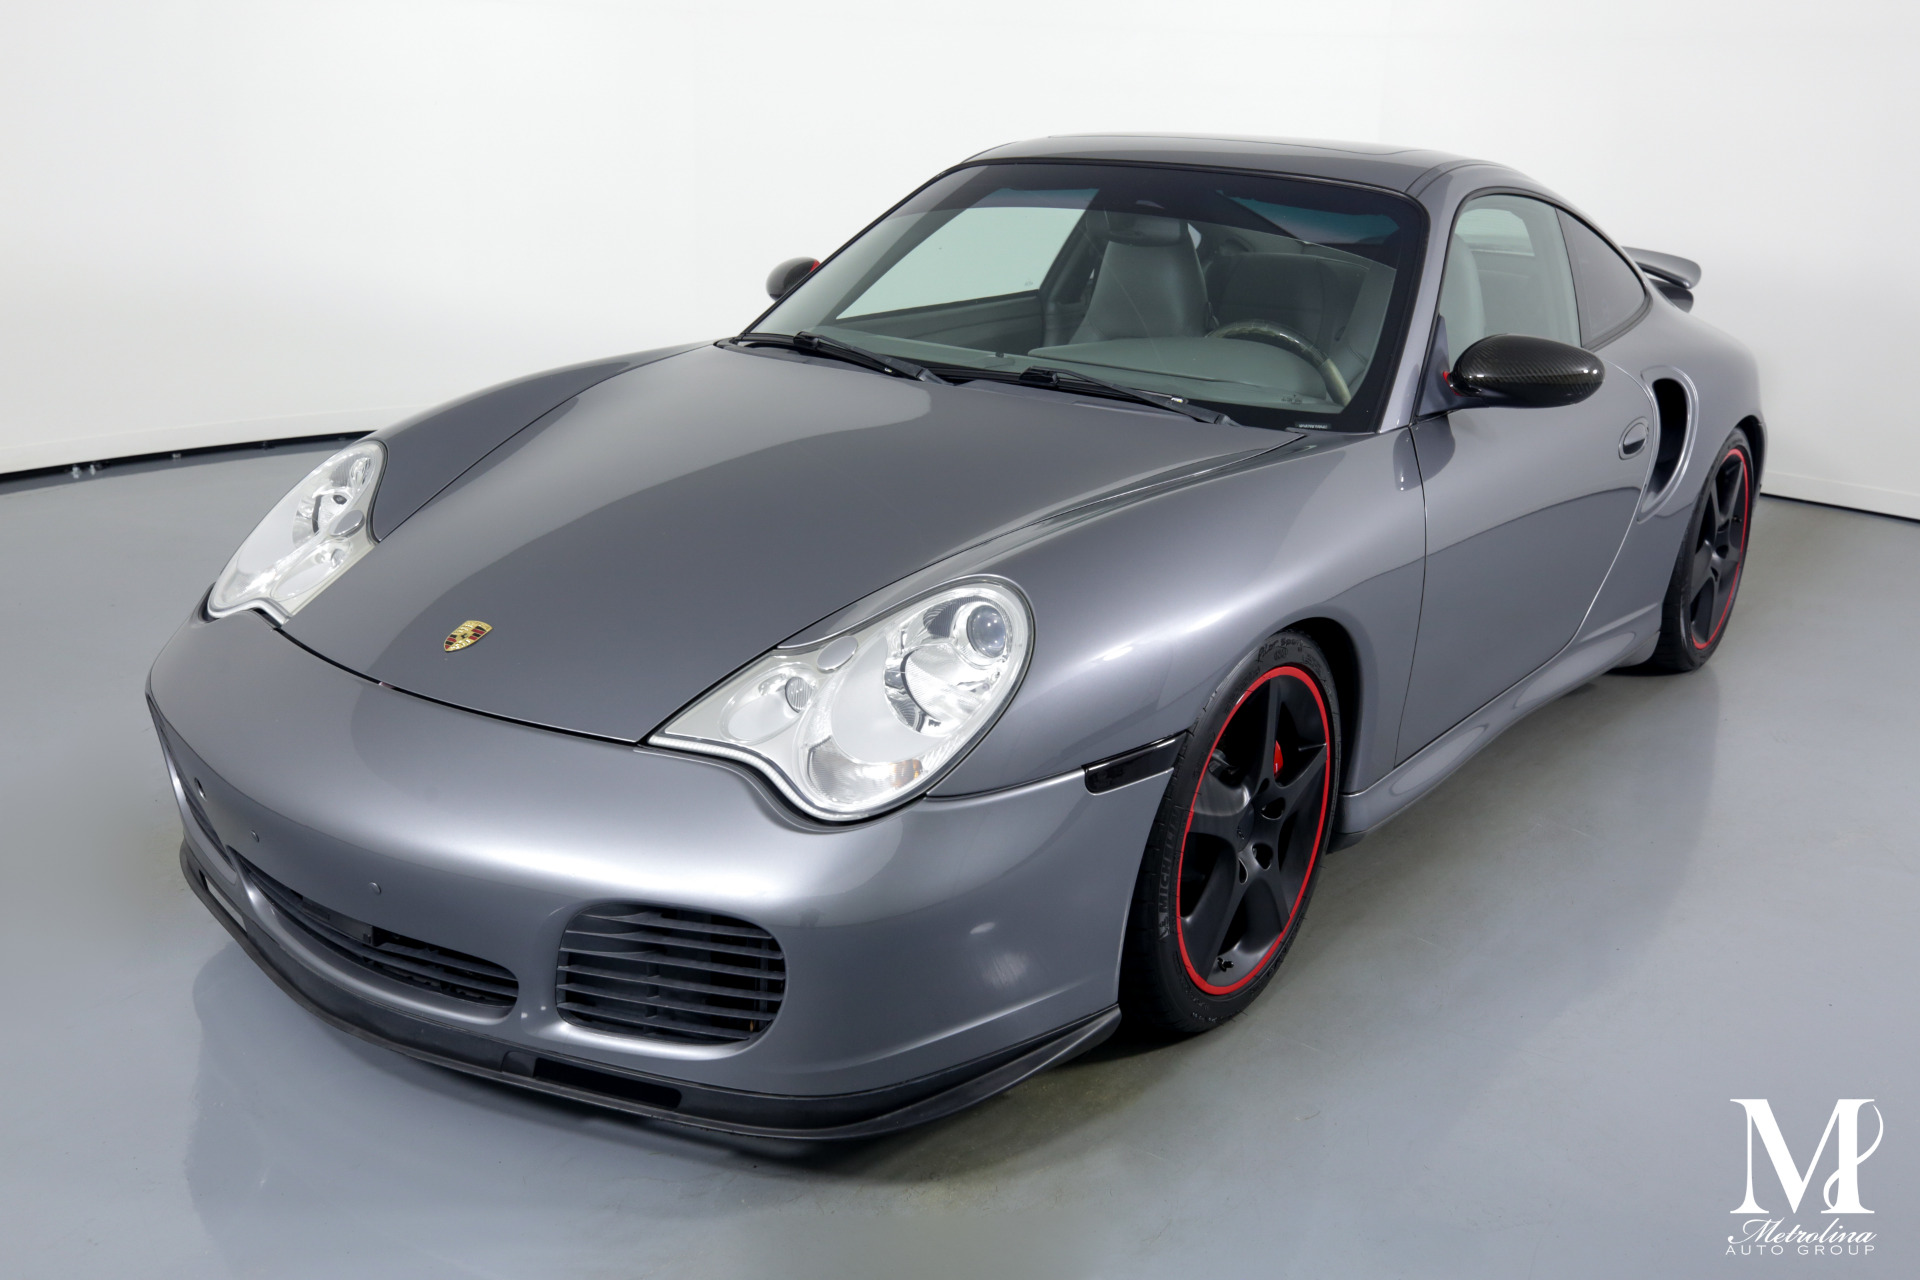 Used 2003 Porsche 911 Turbo for sale $49,996 at Metrolina Auto Group in Charlotte NC 28217 - 4